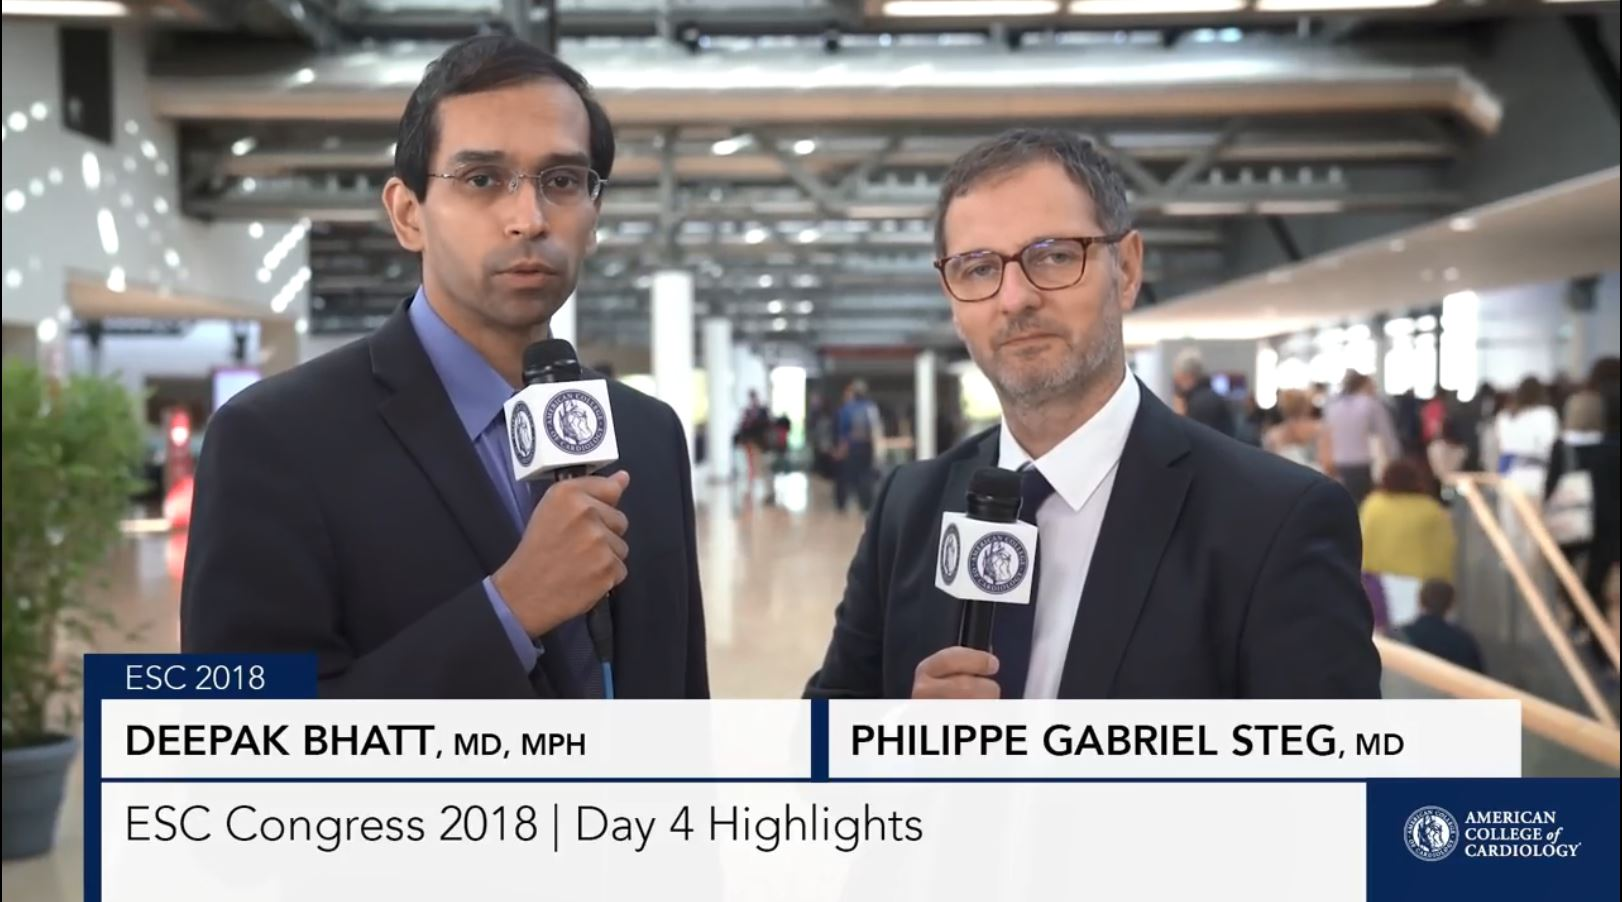 ESC Congress 2018 | Day 4 Highlights